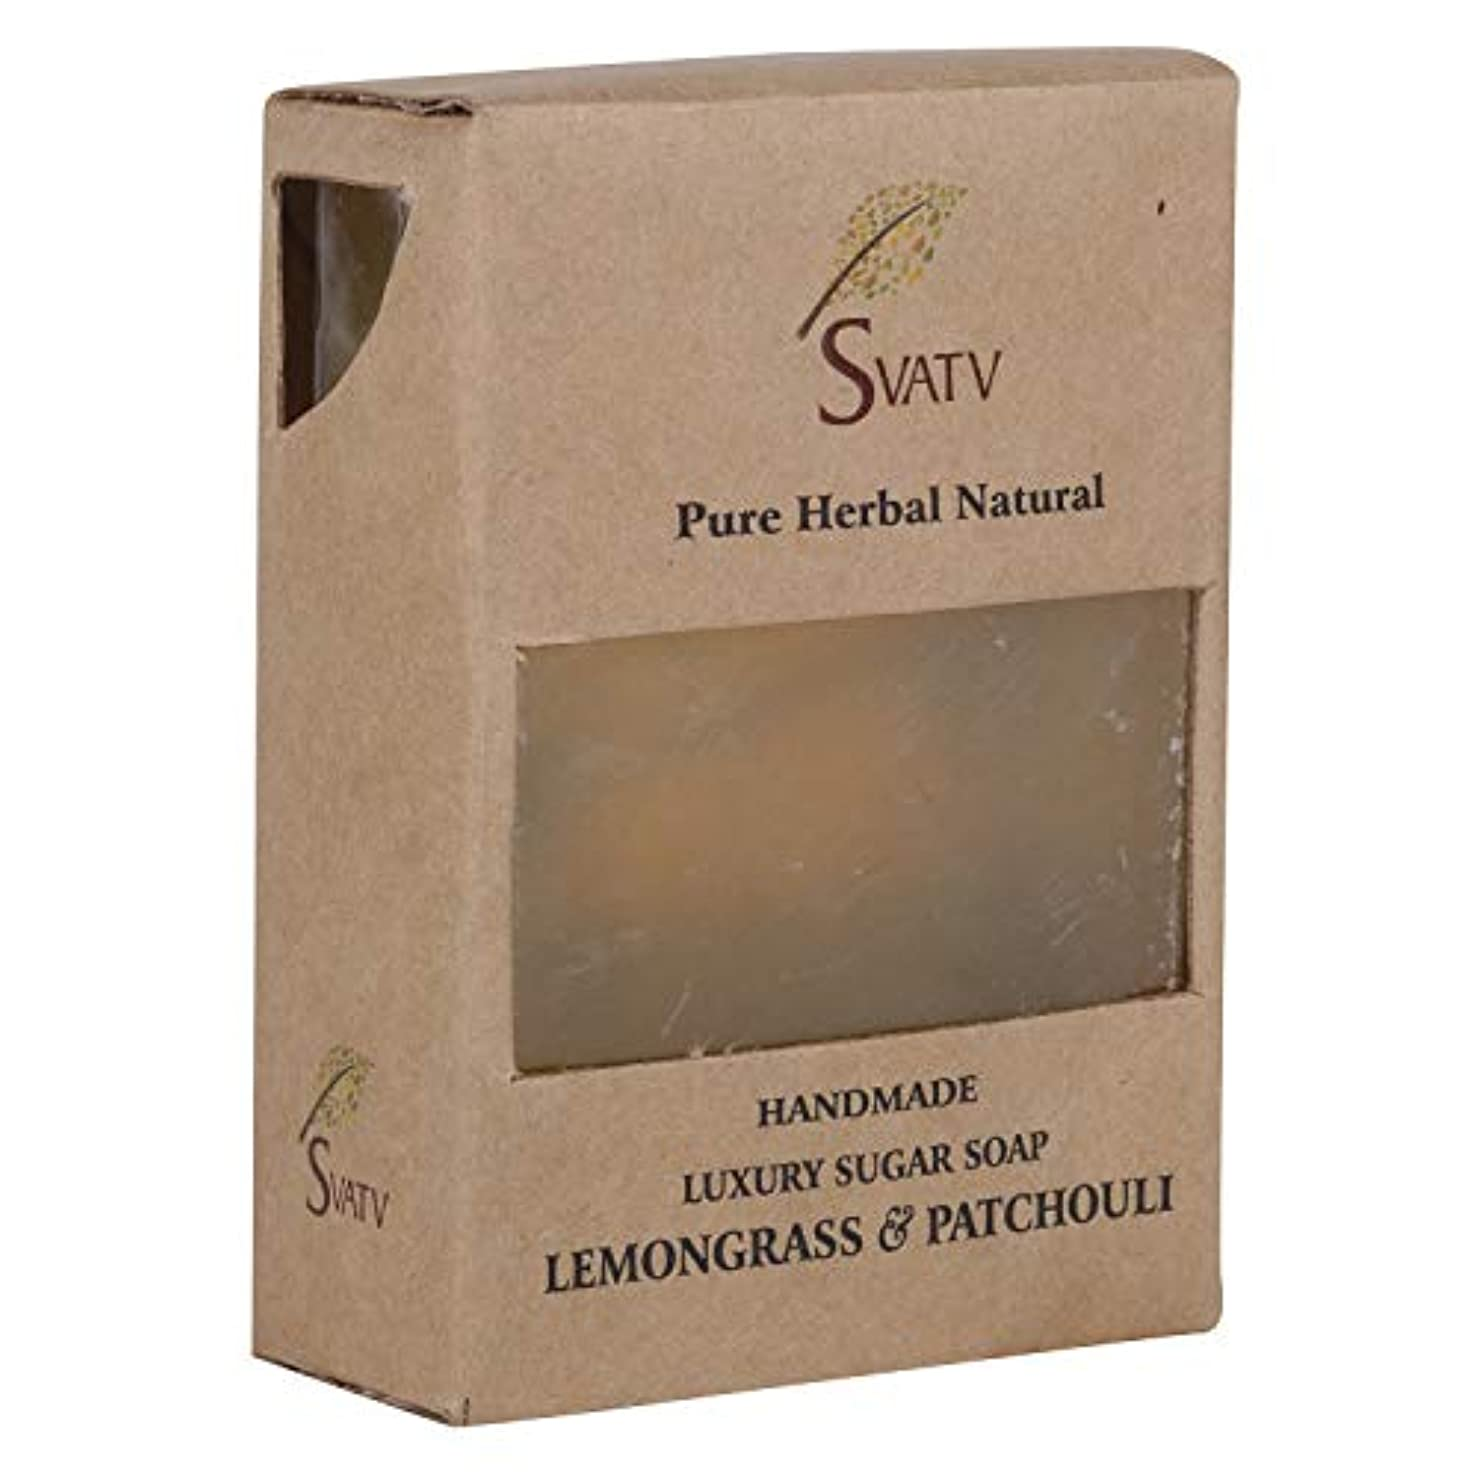 パラシュート分子マネージャーSVATV Handmade Luxury Sugar Soap Lemongrass & Patchouli For All Skin types 100g Bar